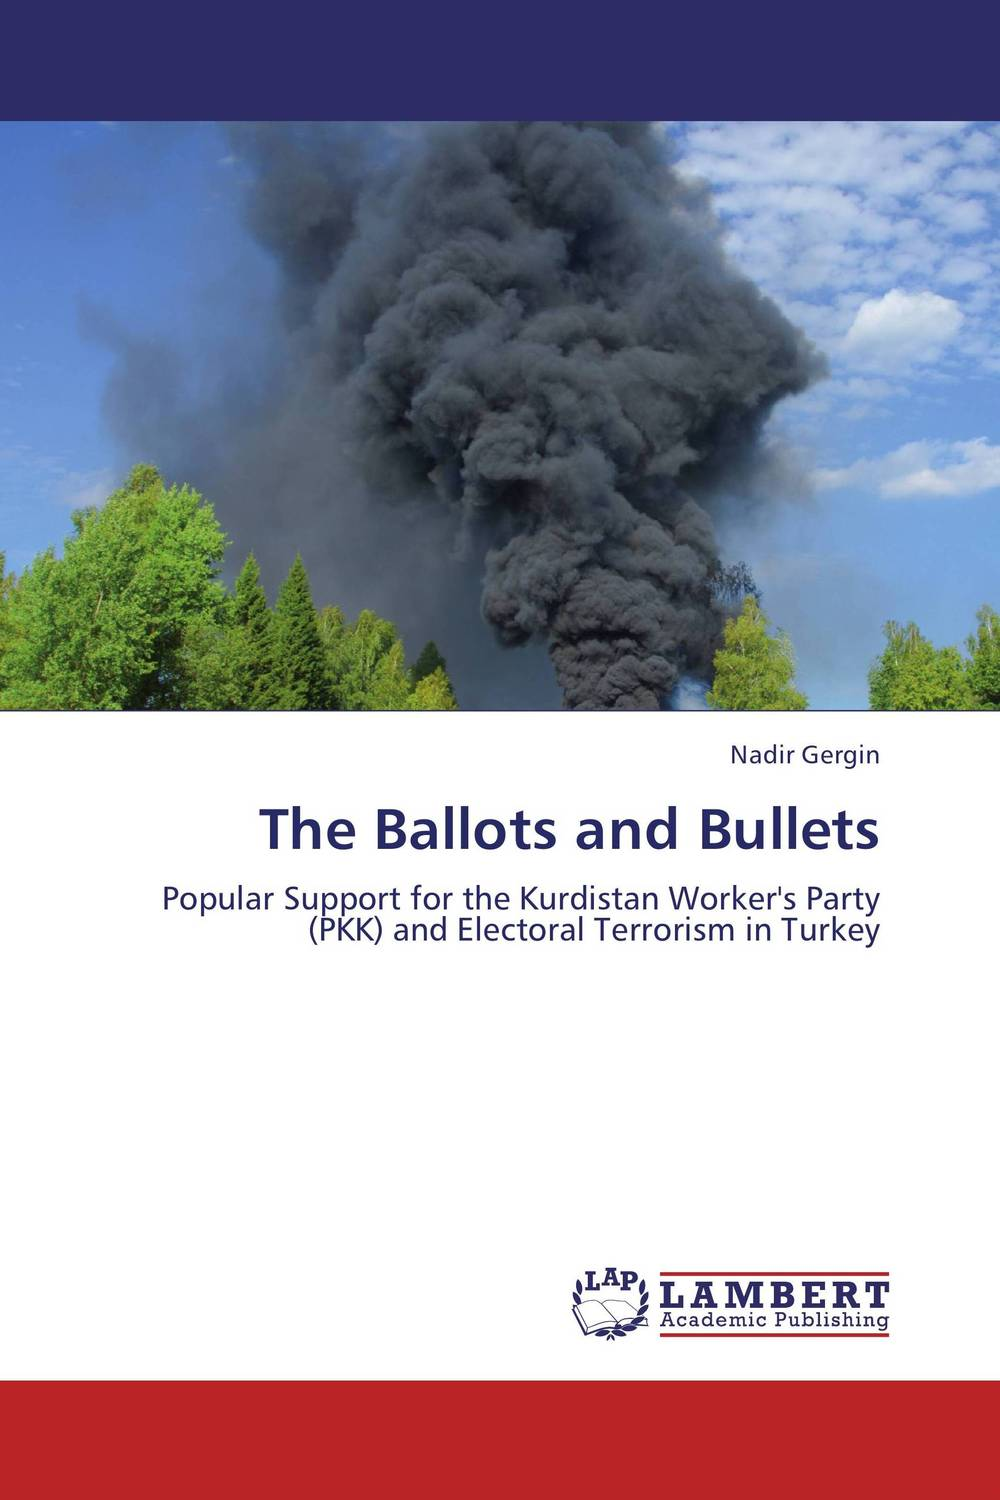 The Ballots and Bullets insurgent